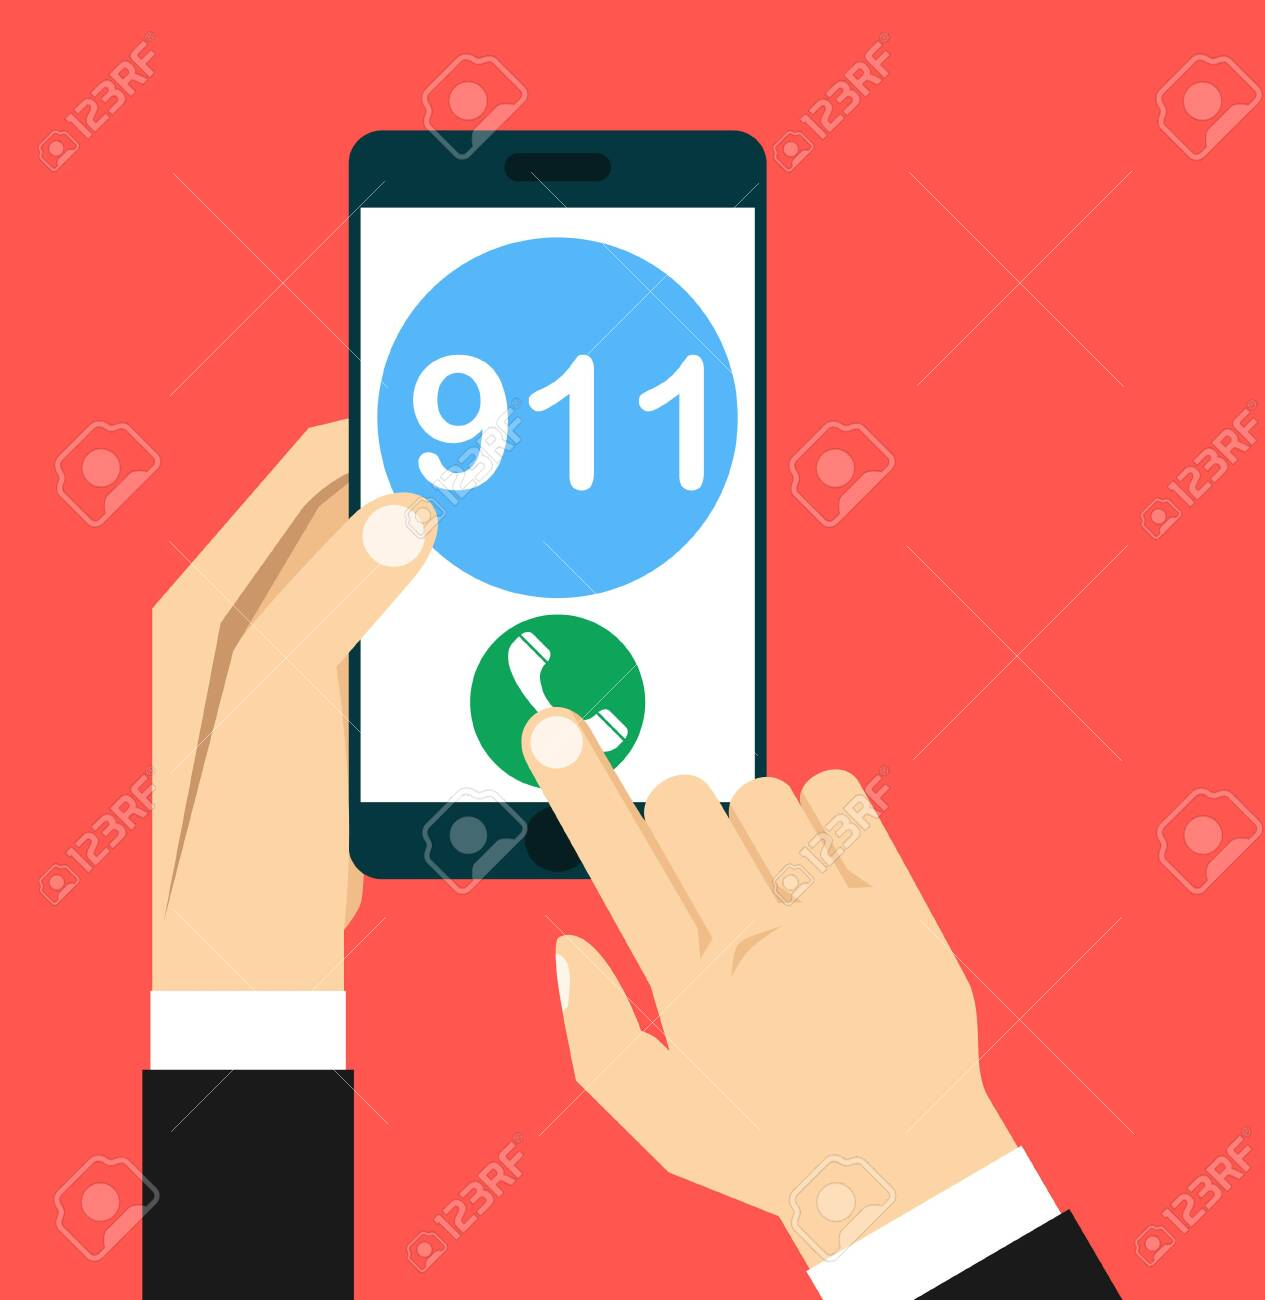 Call 911, emergency call concept. Hand holding smartphone, finger touching call button. Modern flat design vector illustration - 136959223